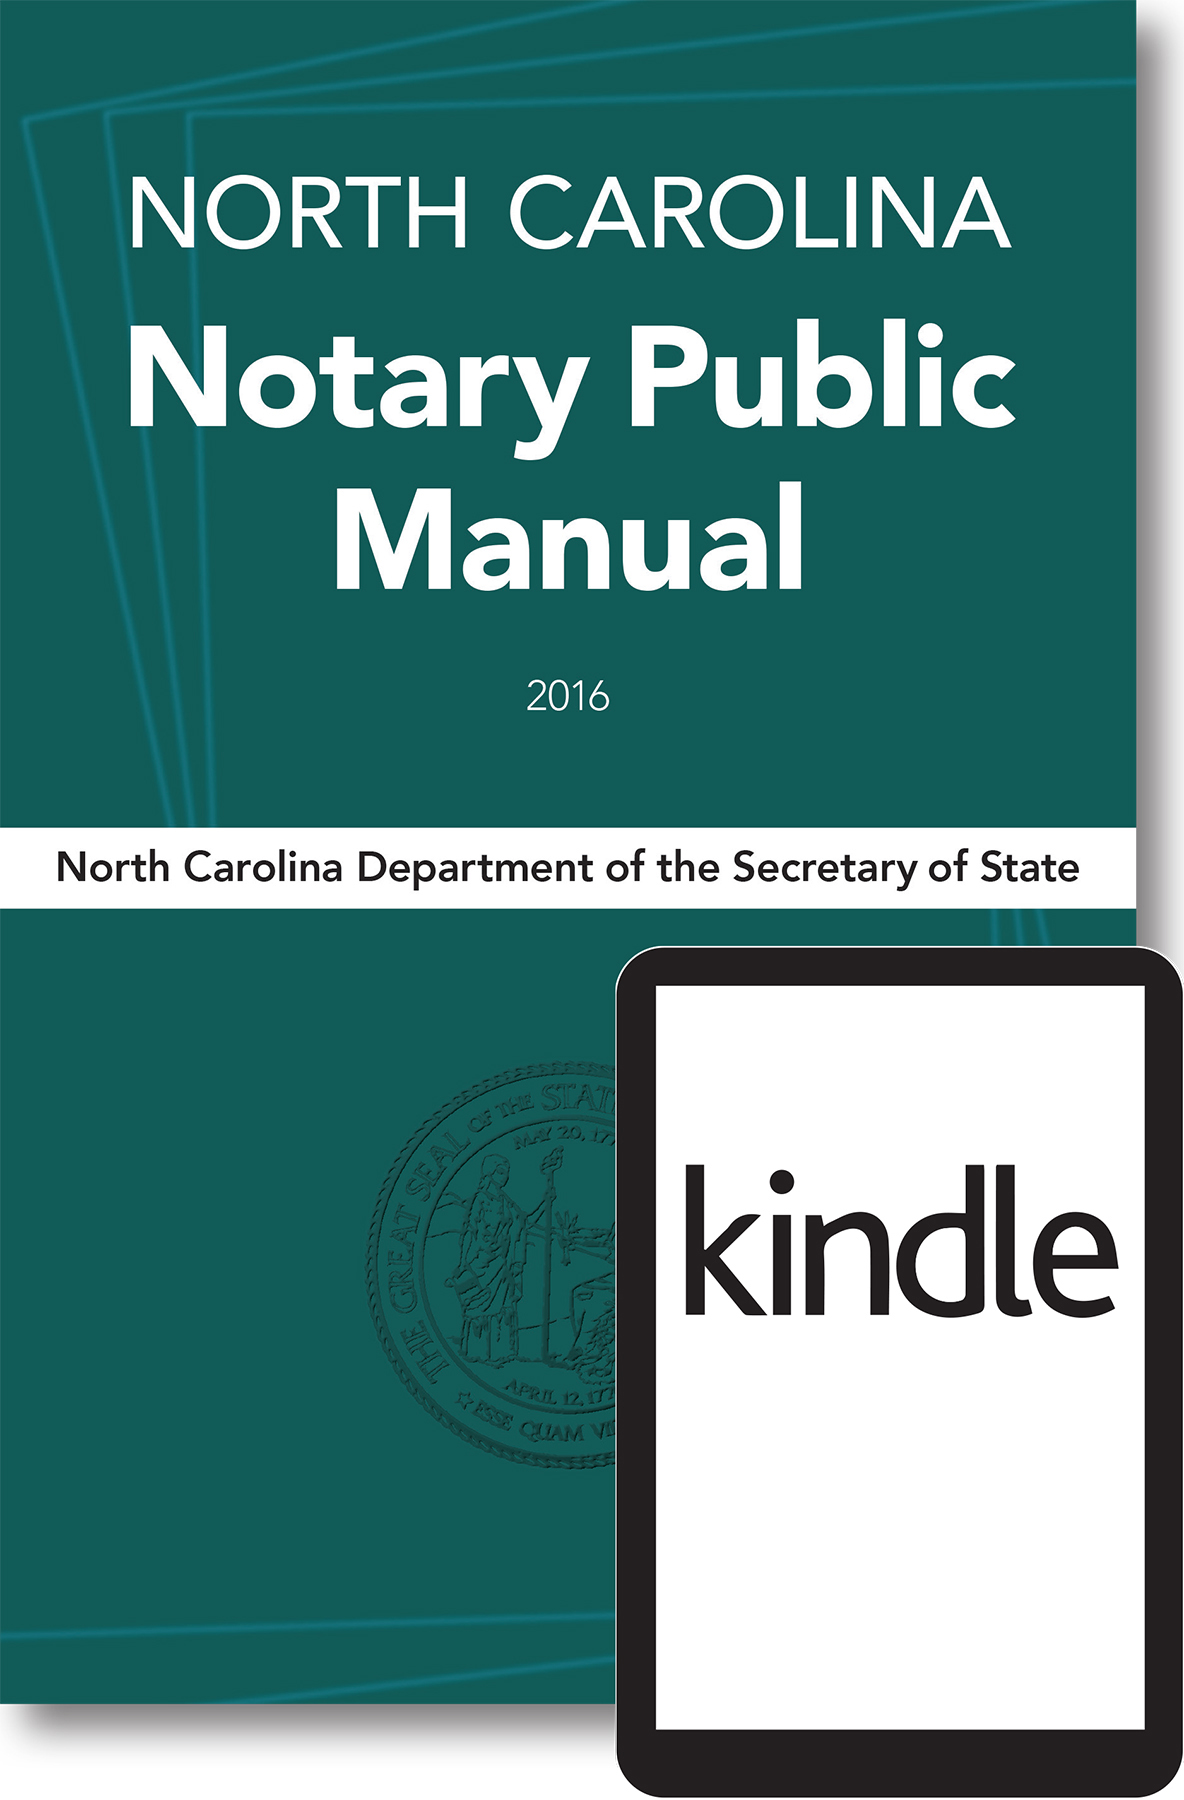 north carolina notary public manual 2016 print version unc school of government. Black Bedroom Furniture Sets. Home Design Ideas